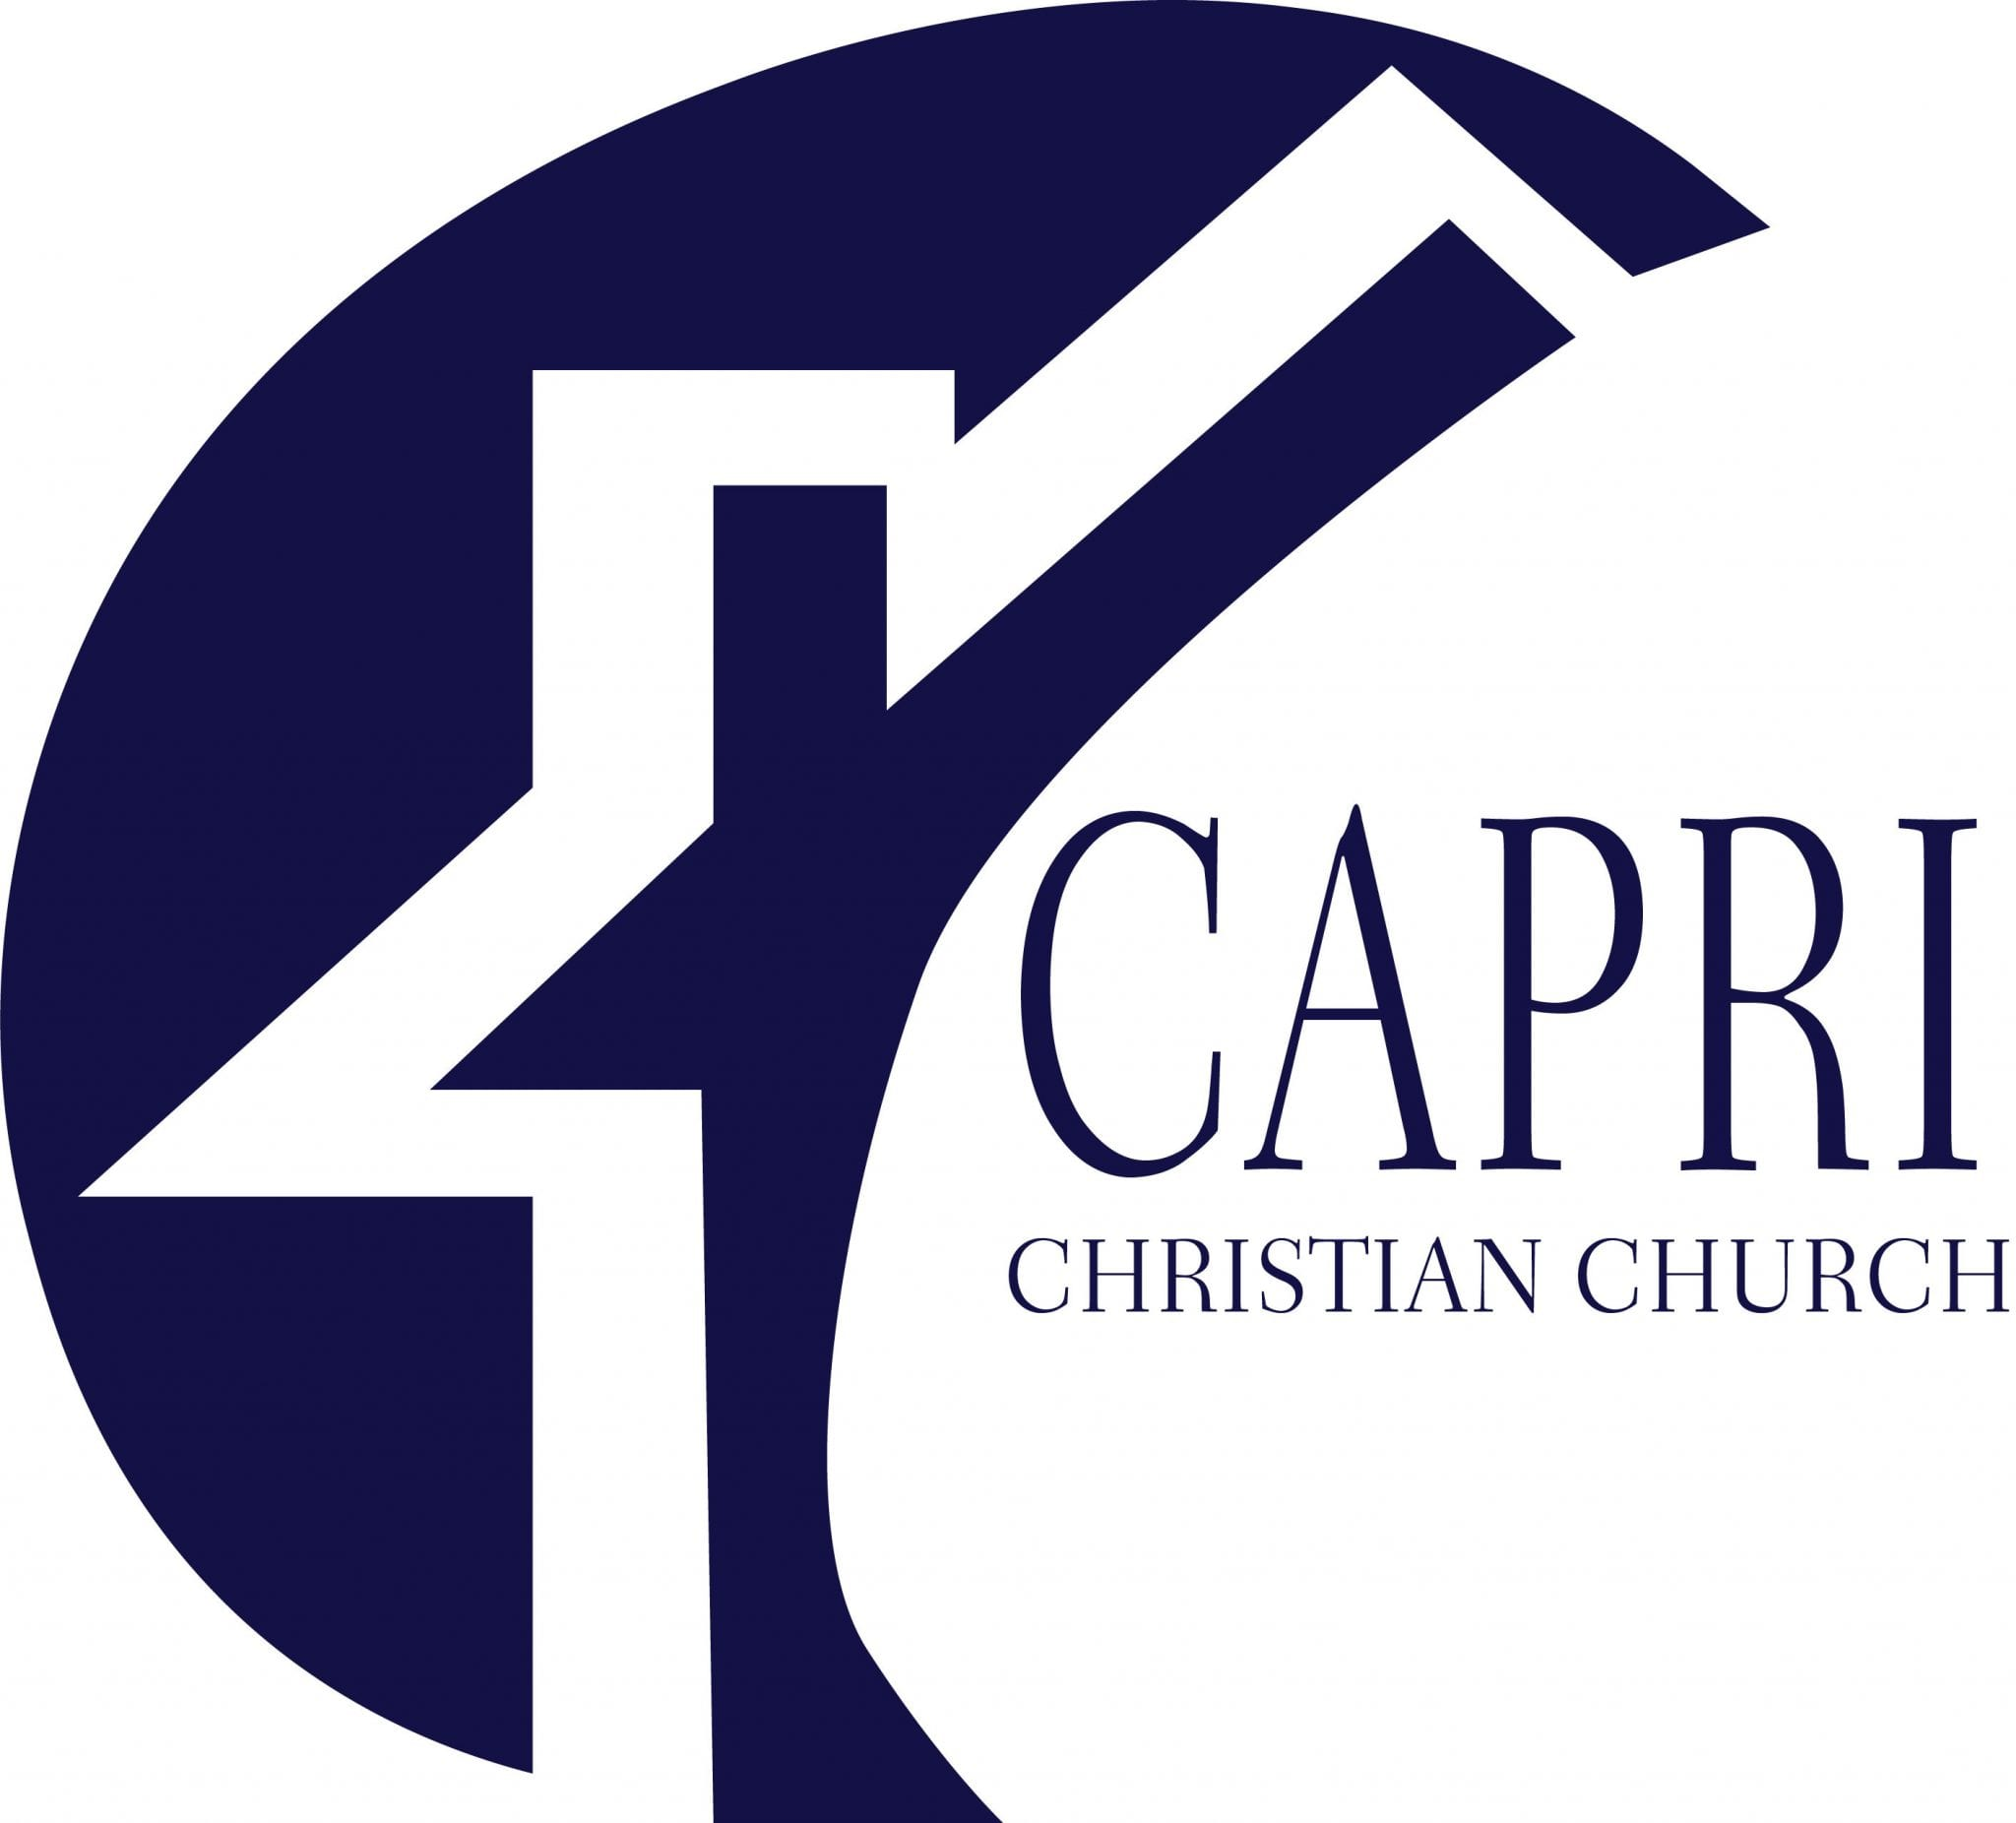 CAPRI CHRISTIAN CHURCH